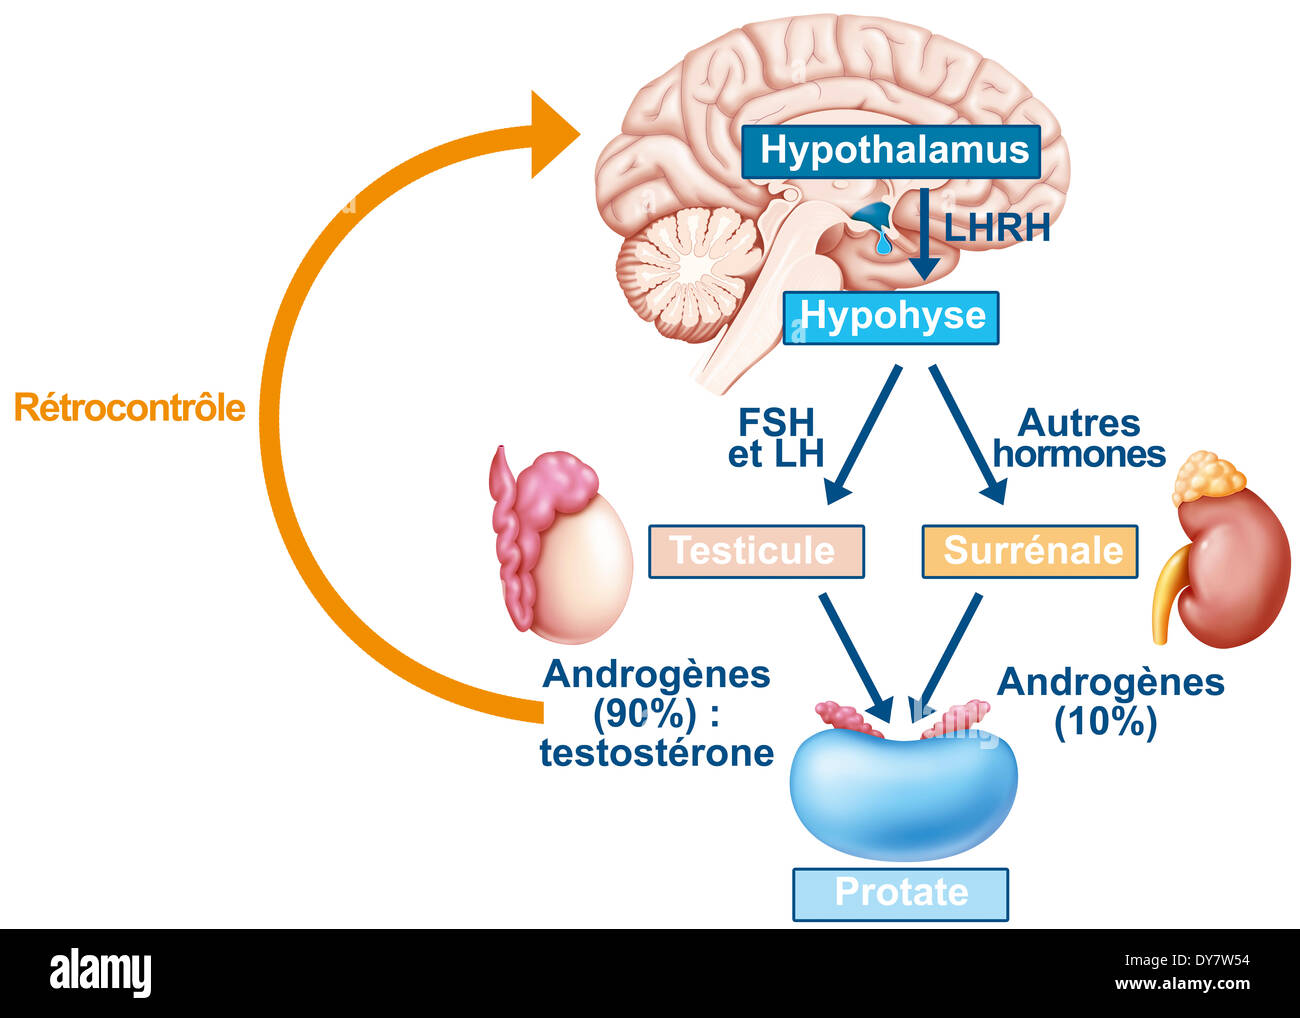 Hormone cycle, drawing - Stock Image